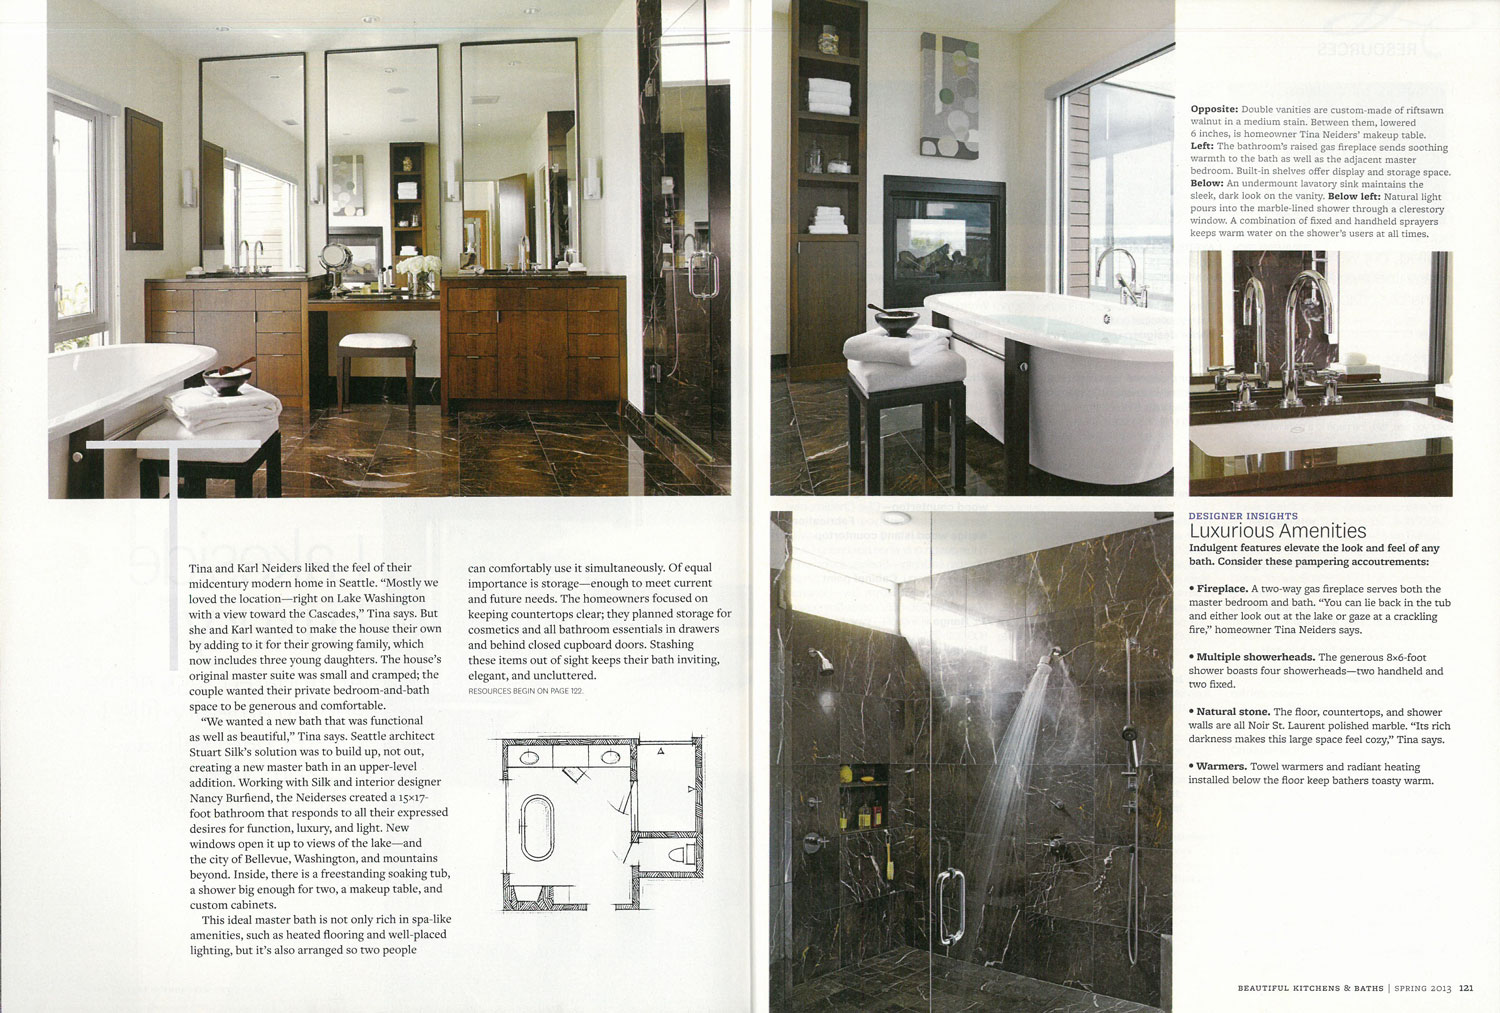 BEAUTIFUL KITCHENS & BATHS SPRING 2013 - NB DESIGN GROUP ...